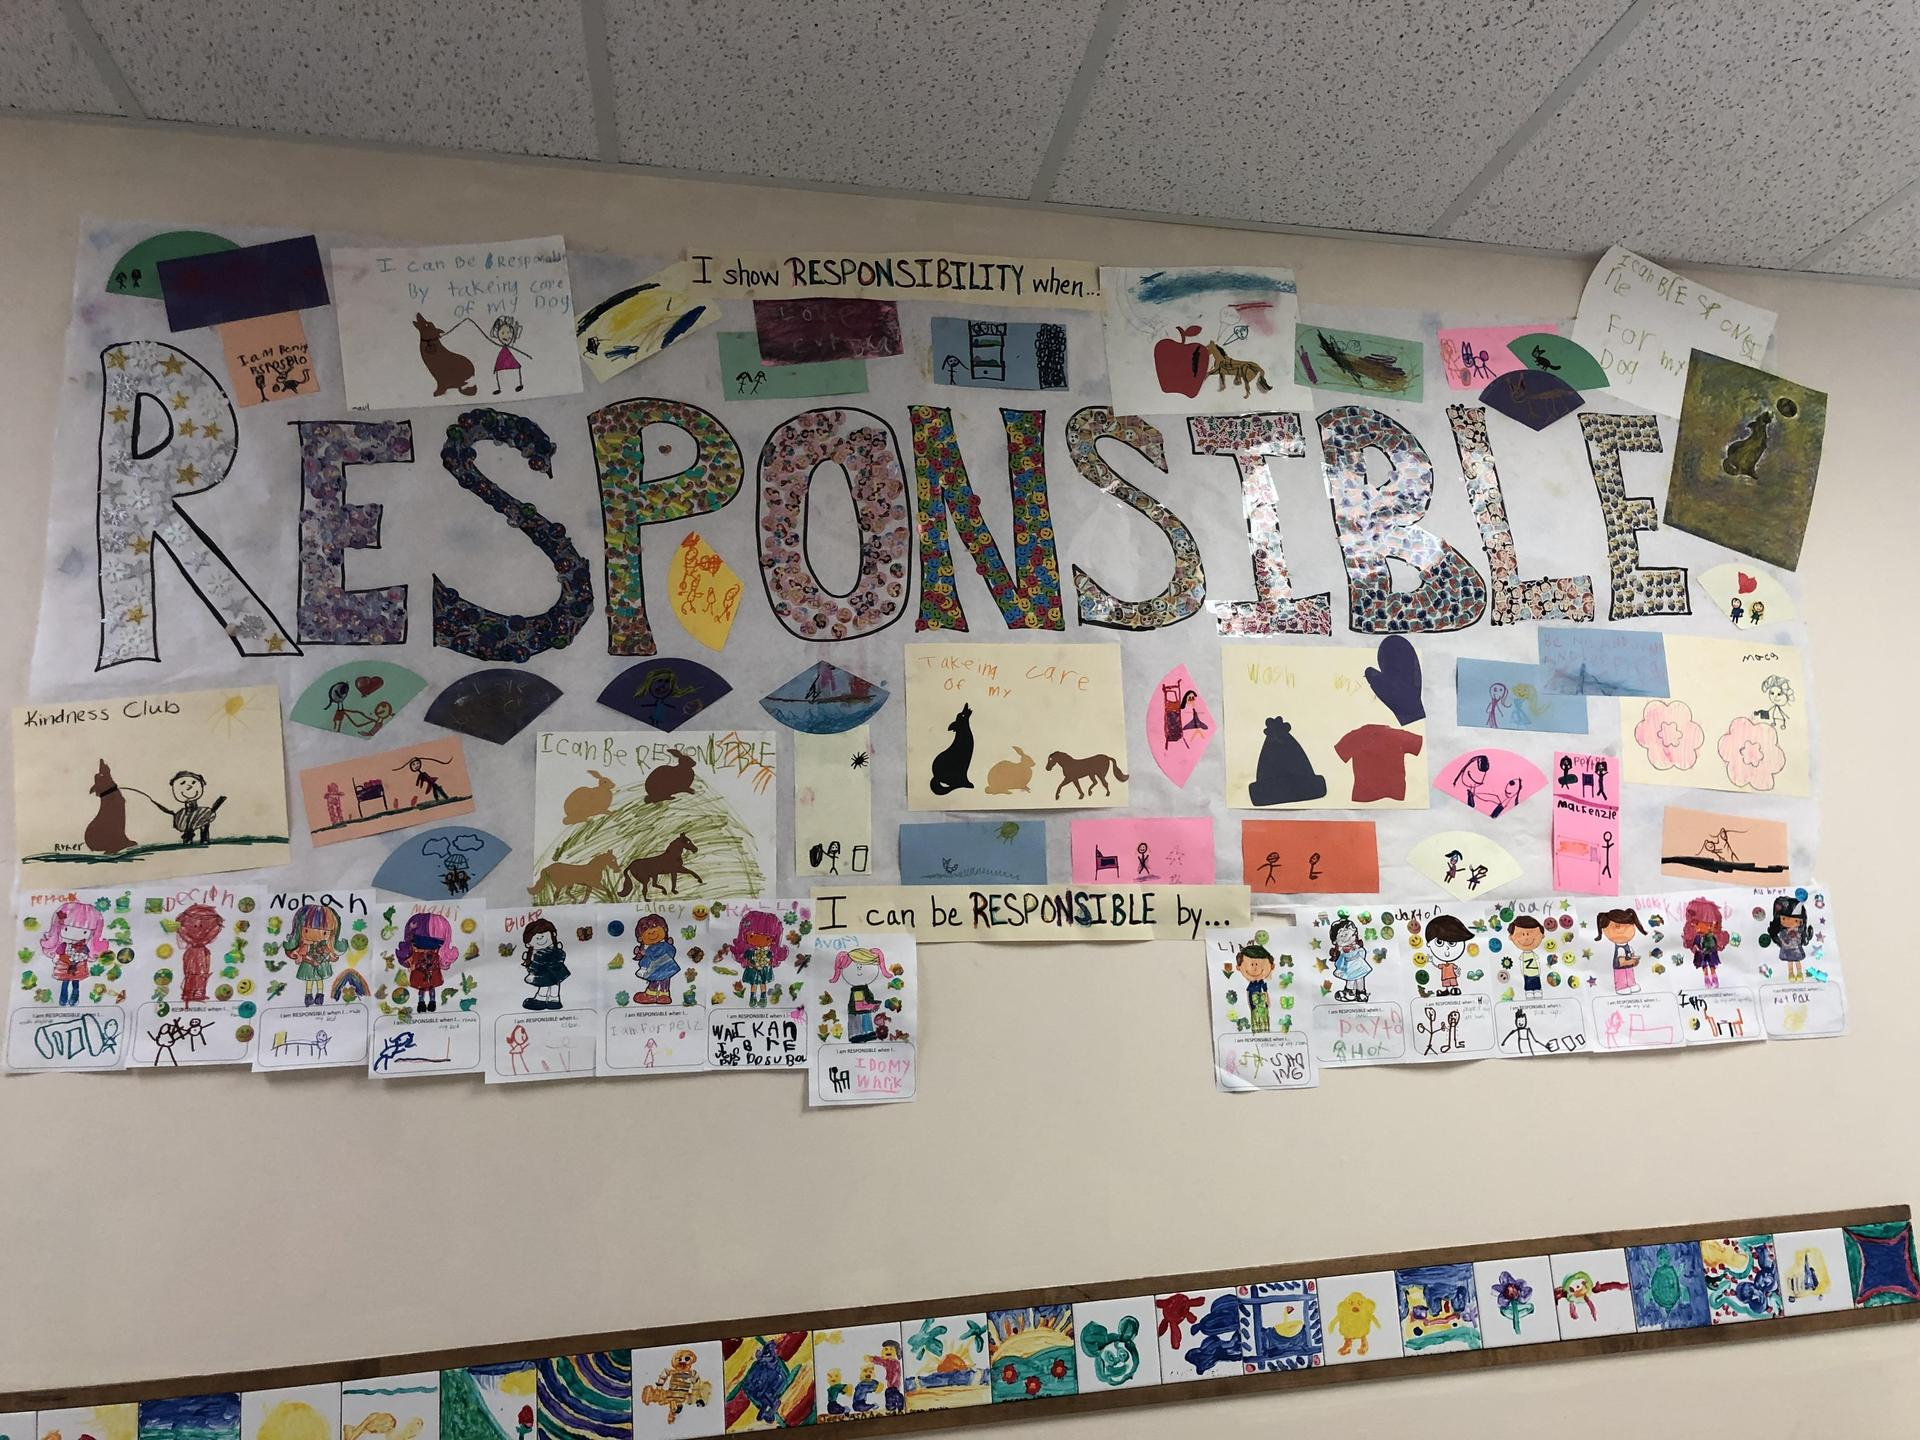 Life Skill poster of Responsibility